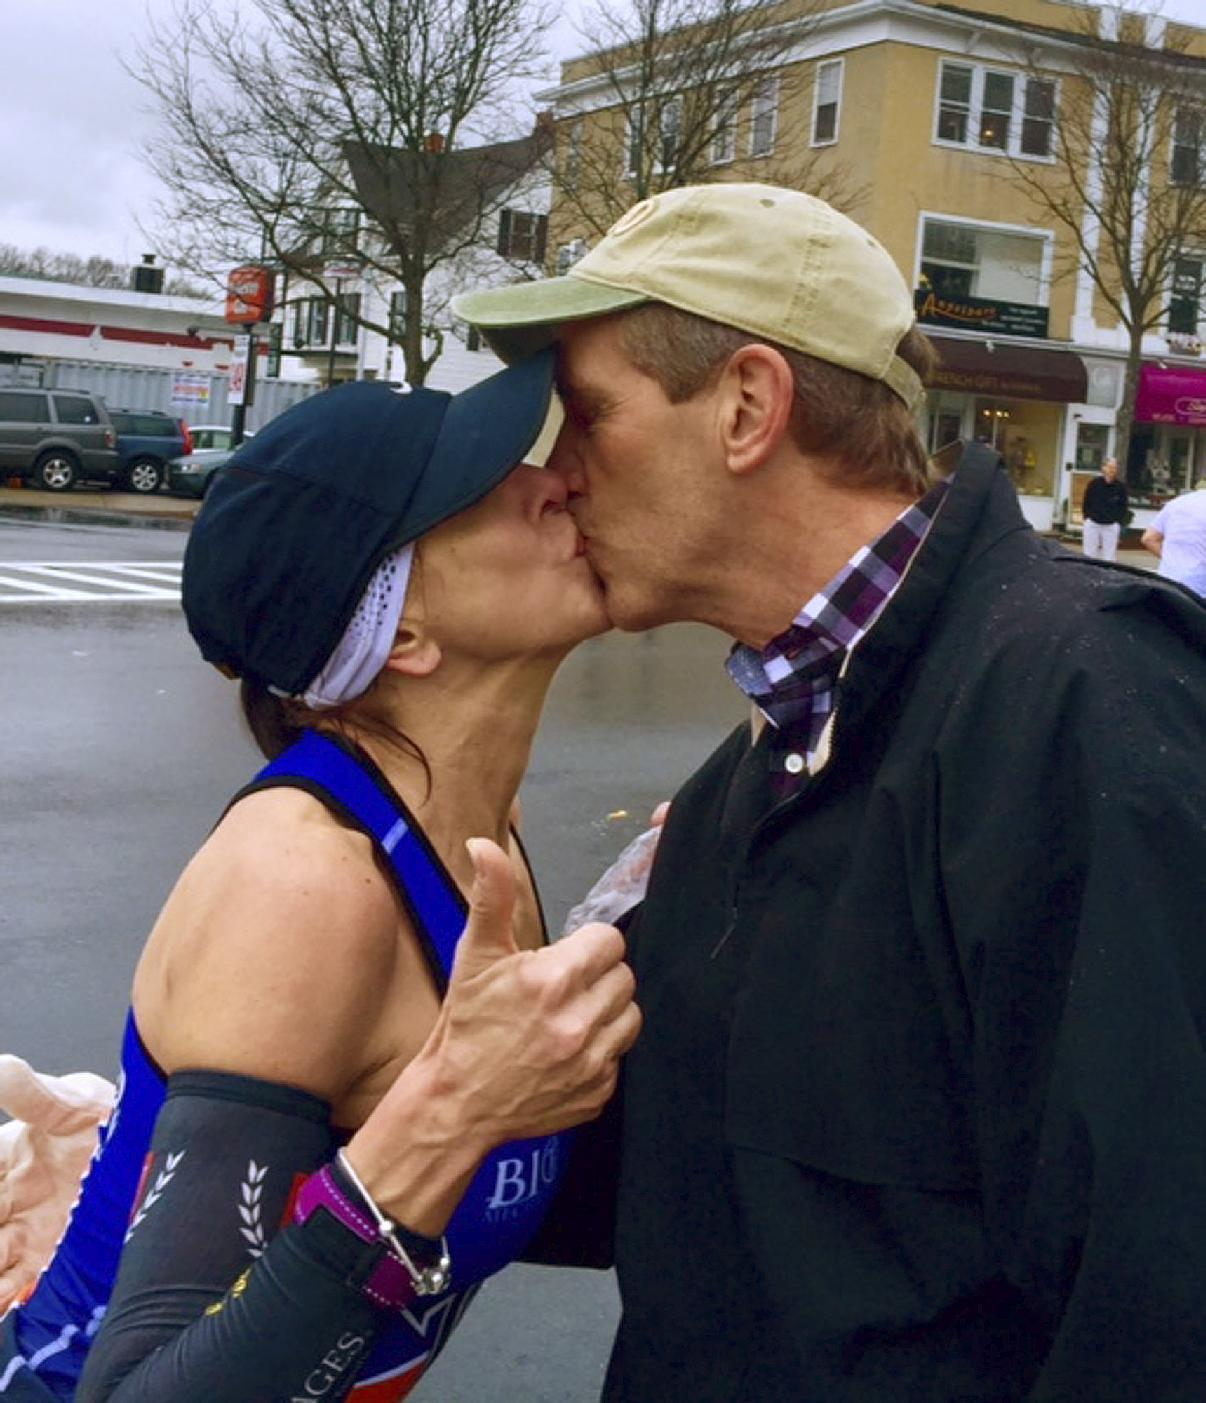 Woman seeking man she kissed at marathon hears from his wife